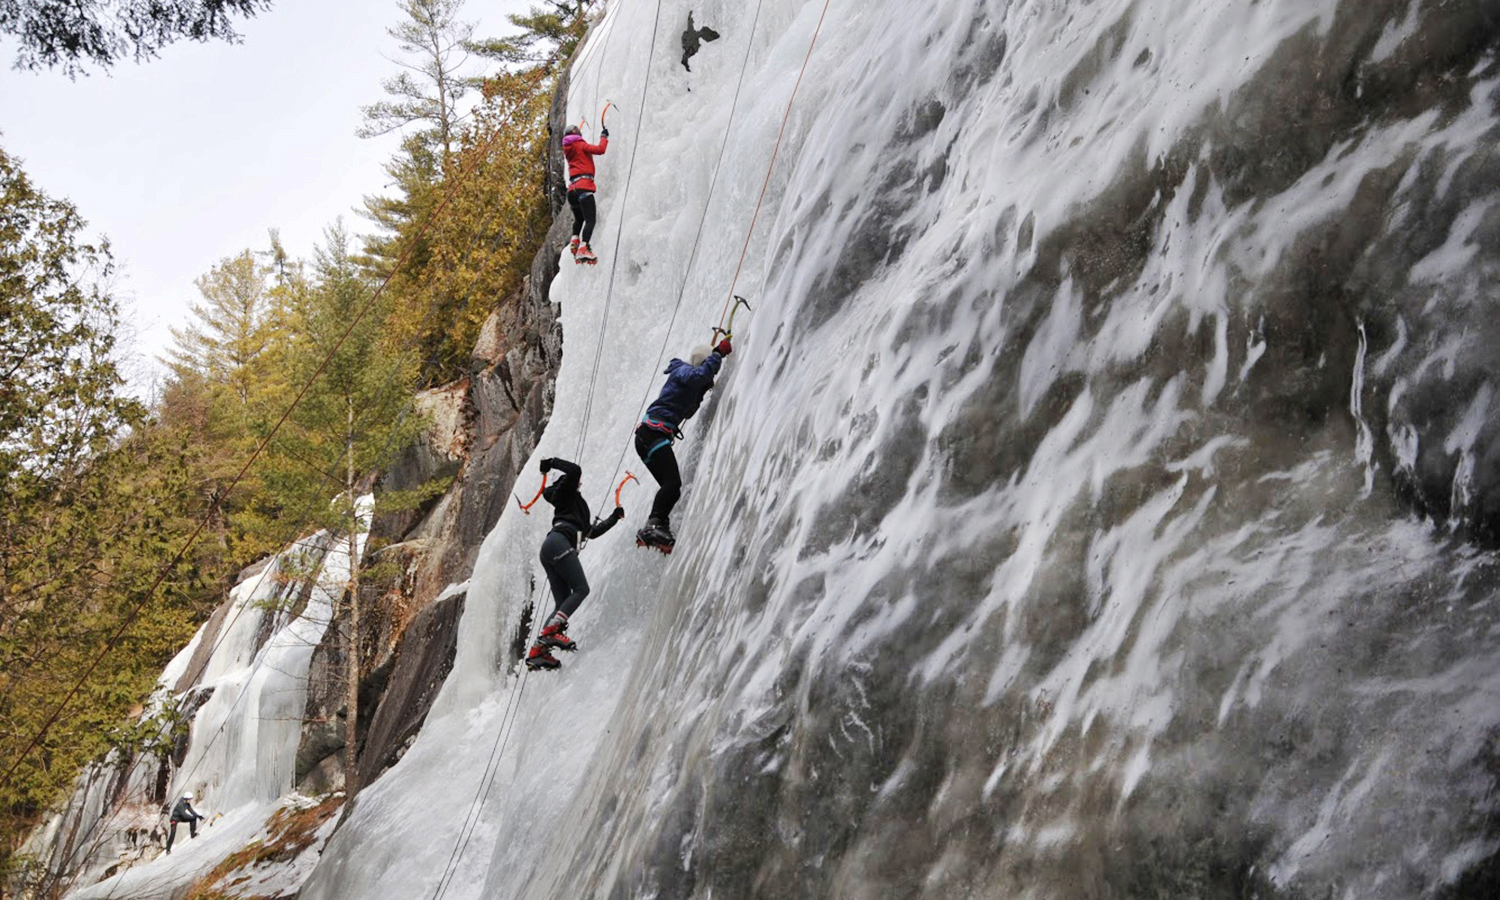 Members of the HWS Outdoor Recreation and Adventure Program climb an ice-covered boulder during a trip to the Adirondacks.